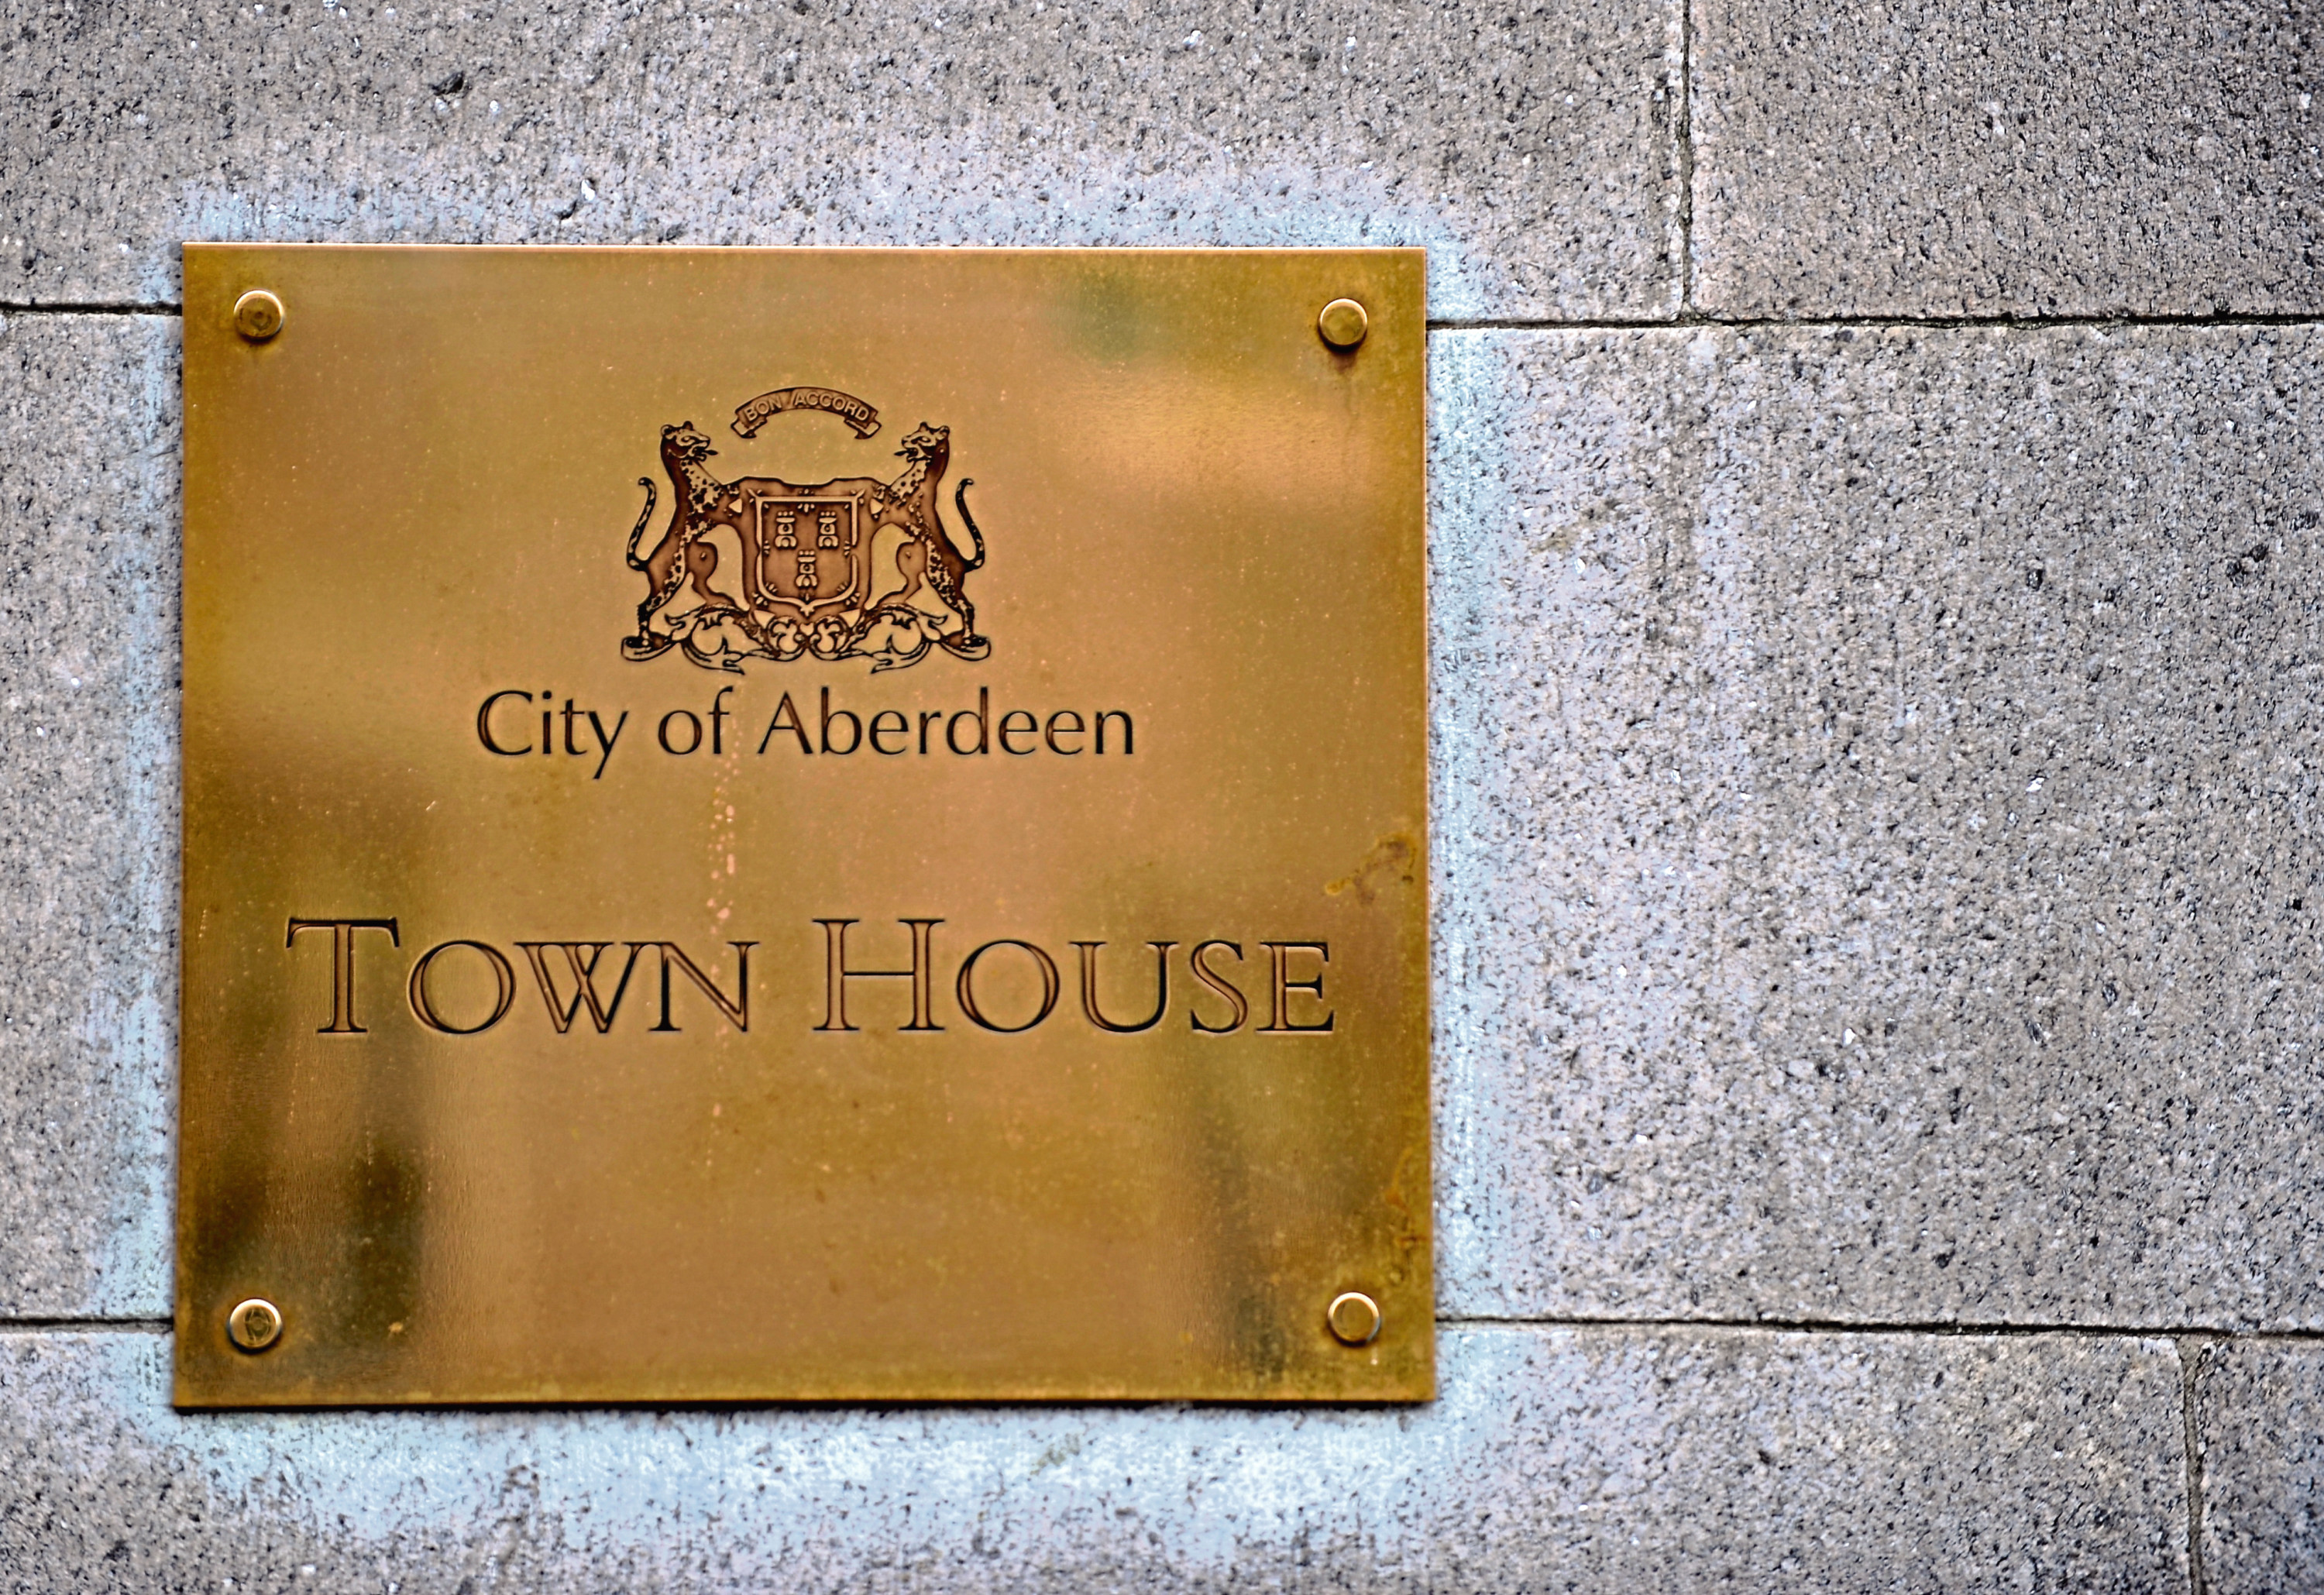 The first in-person council meeting since March took place at Aberdeen Town House